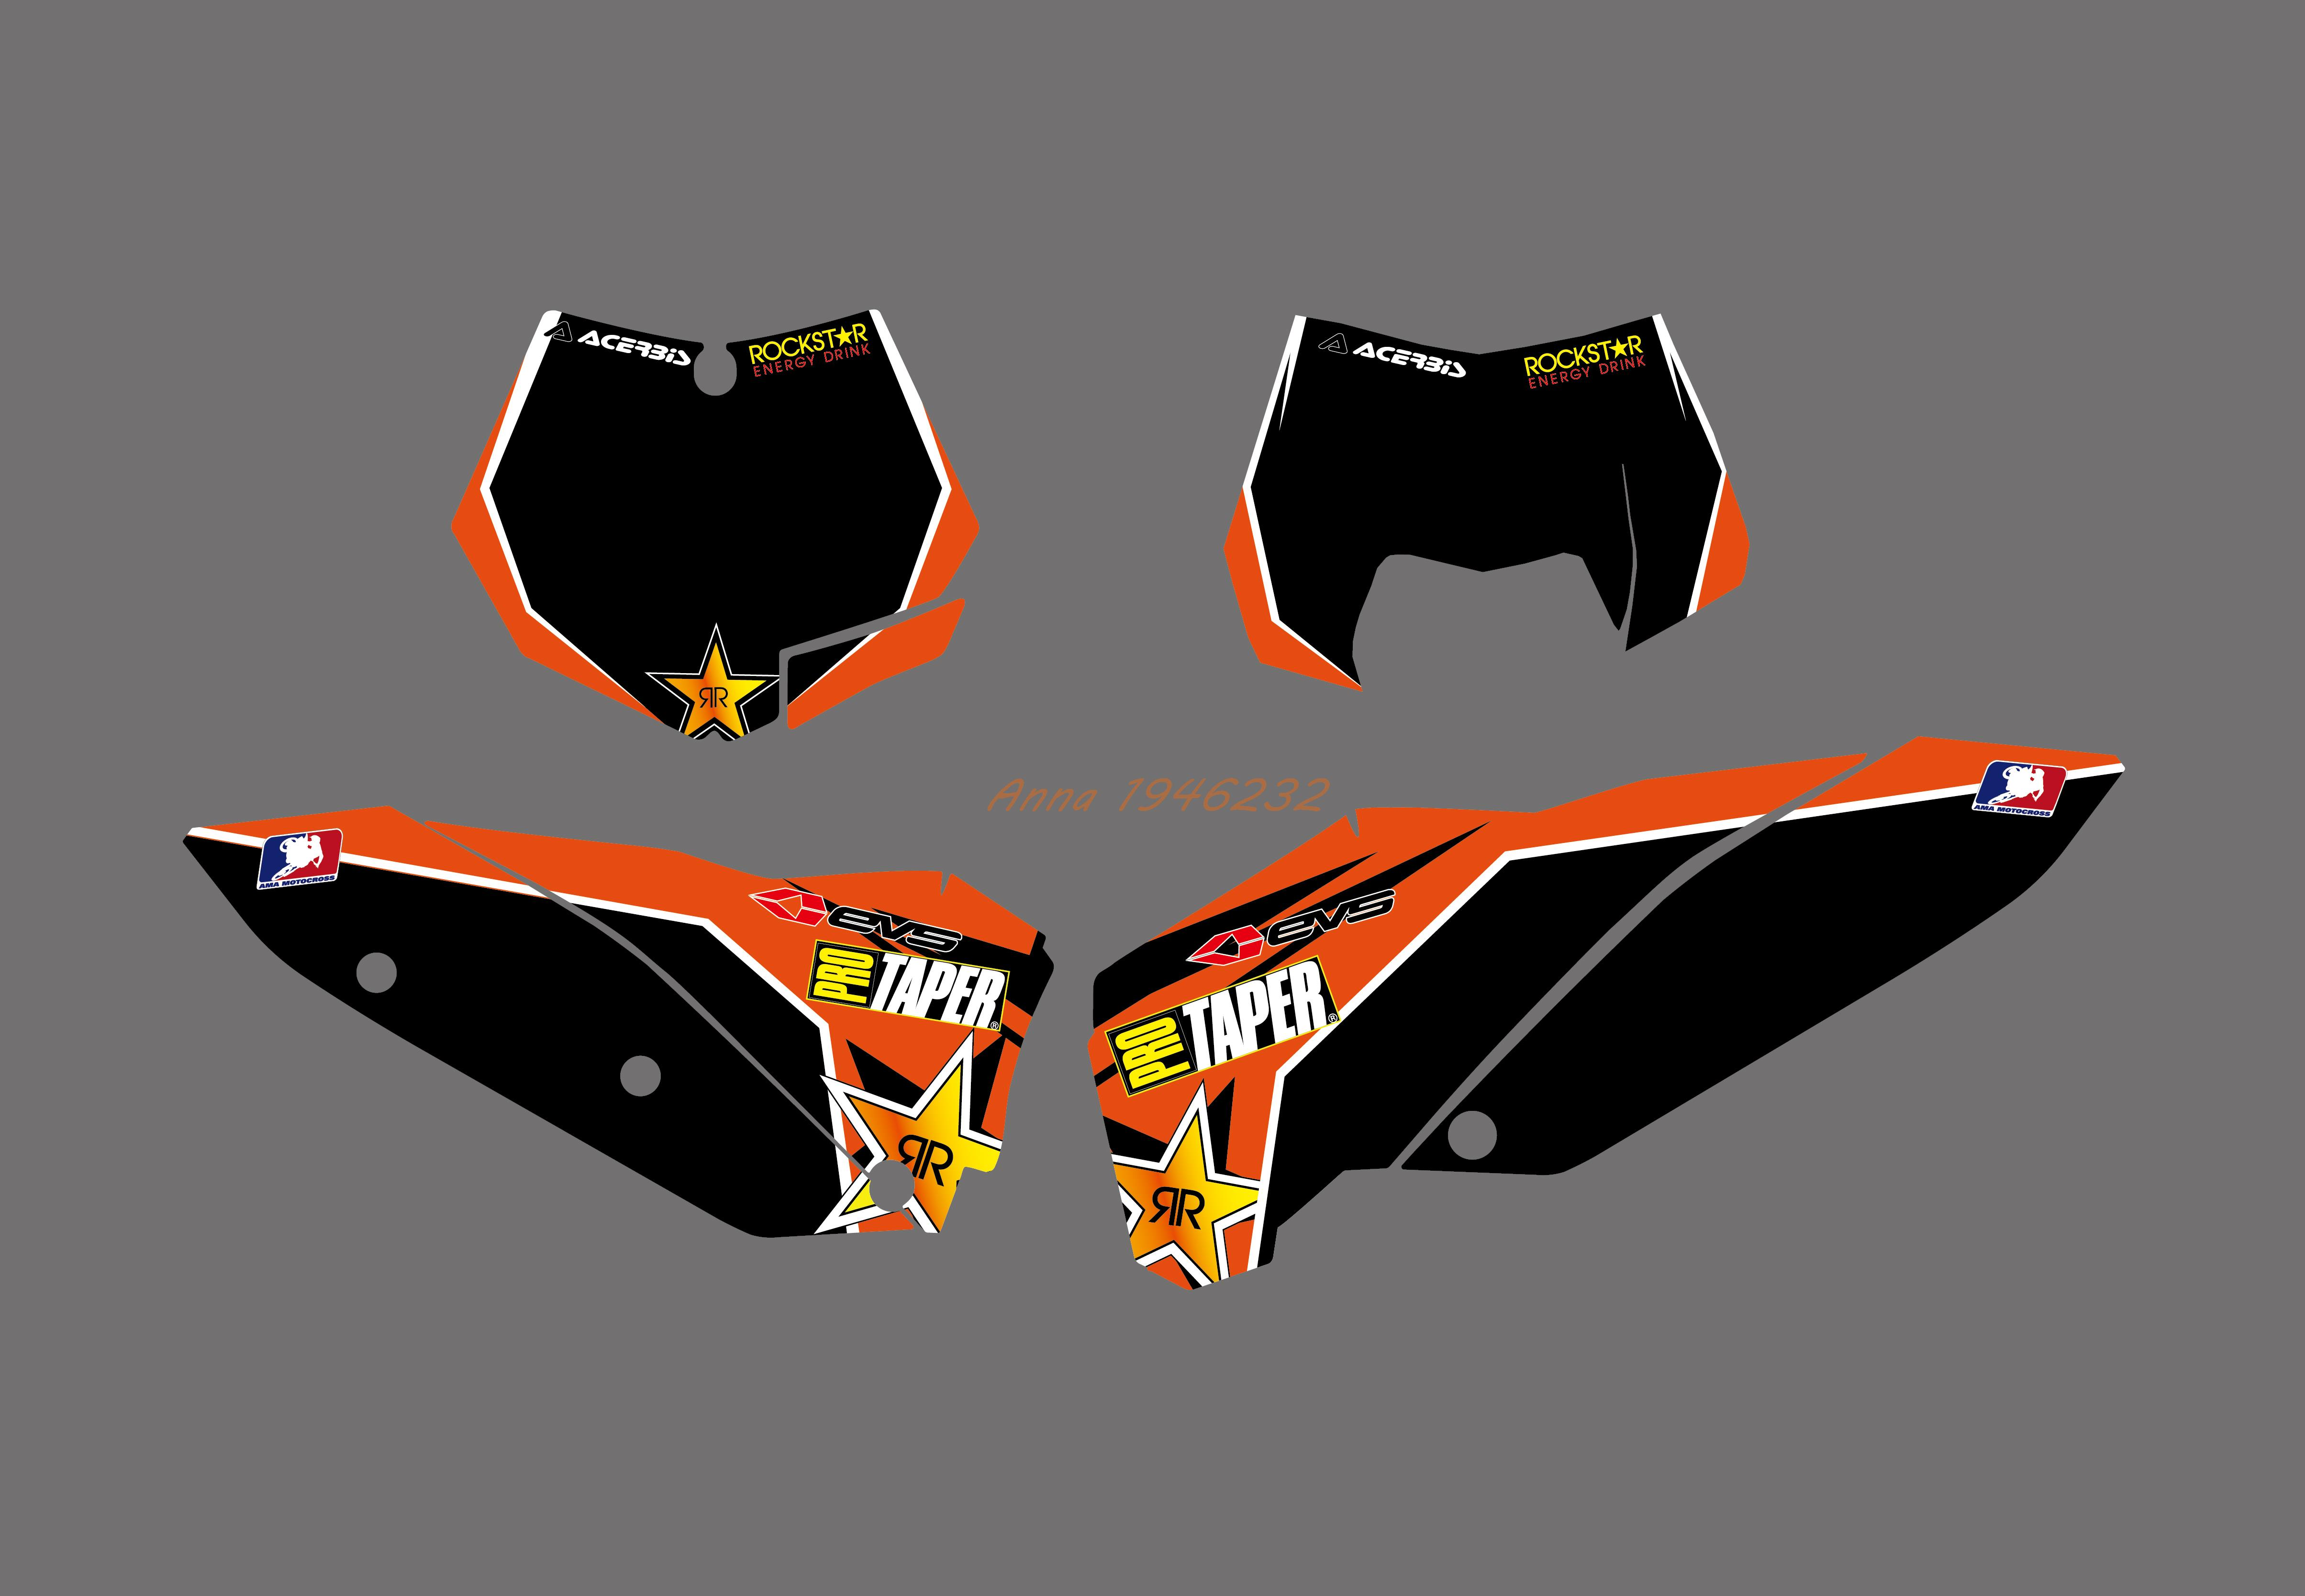 NEW Style TEAM GRAPHIC WITH BACKGROUNDS DECAL STICKER FOR KTM 125 250 300 350 450 525 SX SXF 2007 2008 2009 2010-in Decals & Stickers from Automobiles & Motorcycles    3